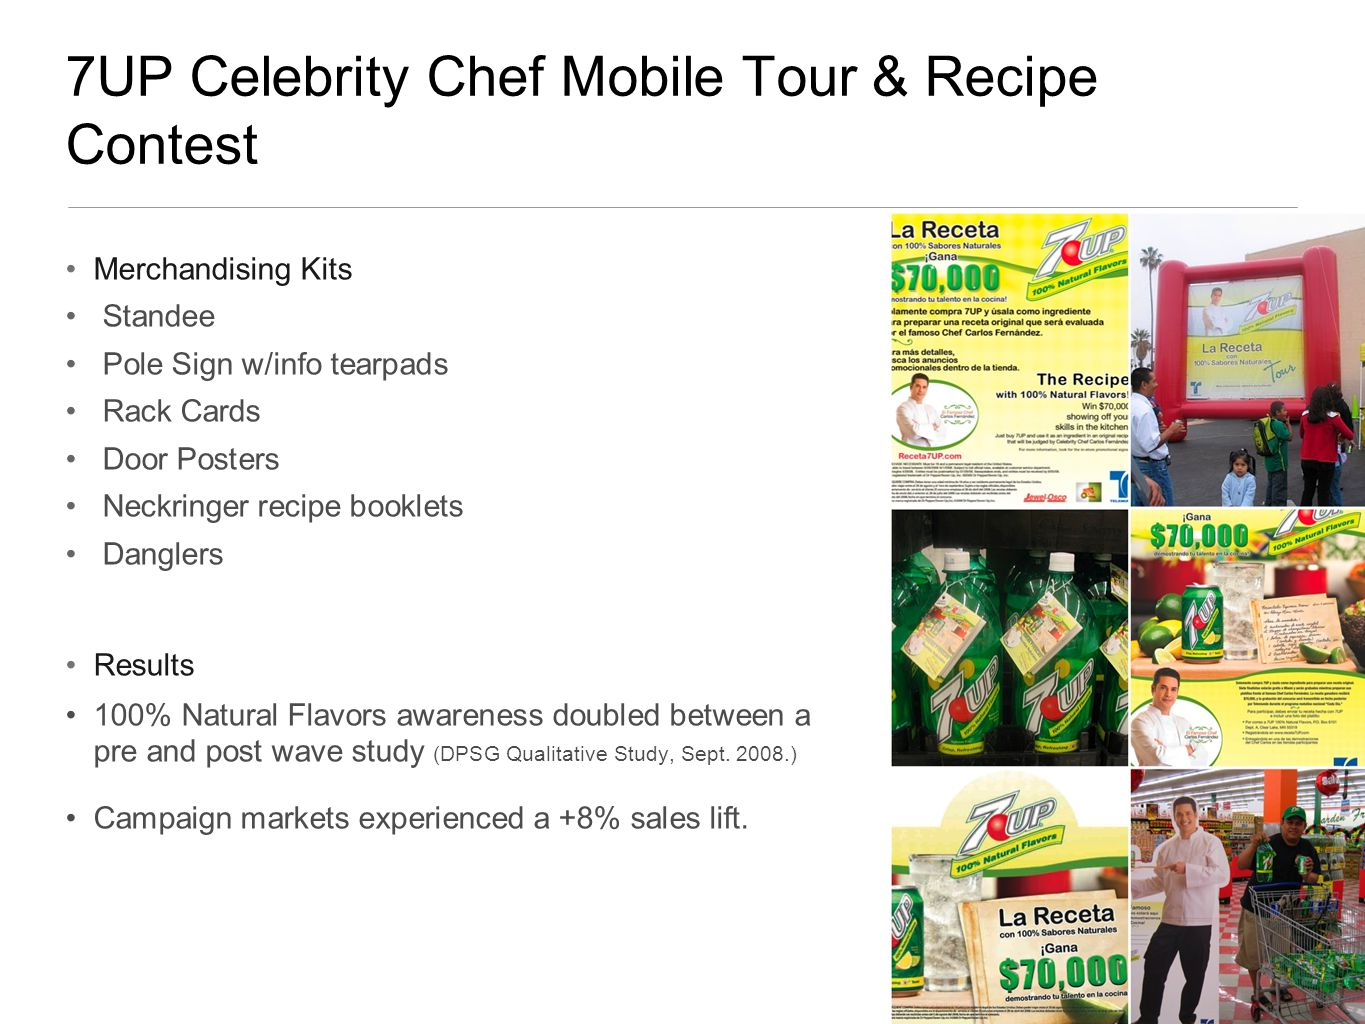 7UP Celebrity Chef Mobile Tour & Recipe Contest Merchandising Kits Standee Pole Sign w/info tearpads Rack Cards Door Posters Neckringer recipe booklets Danglers Results 100% Natural Flavors awareness doubled between a pre and post wave study (DPSG Qualitative Study, Sept.